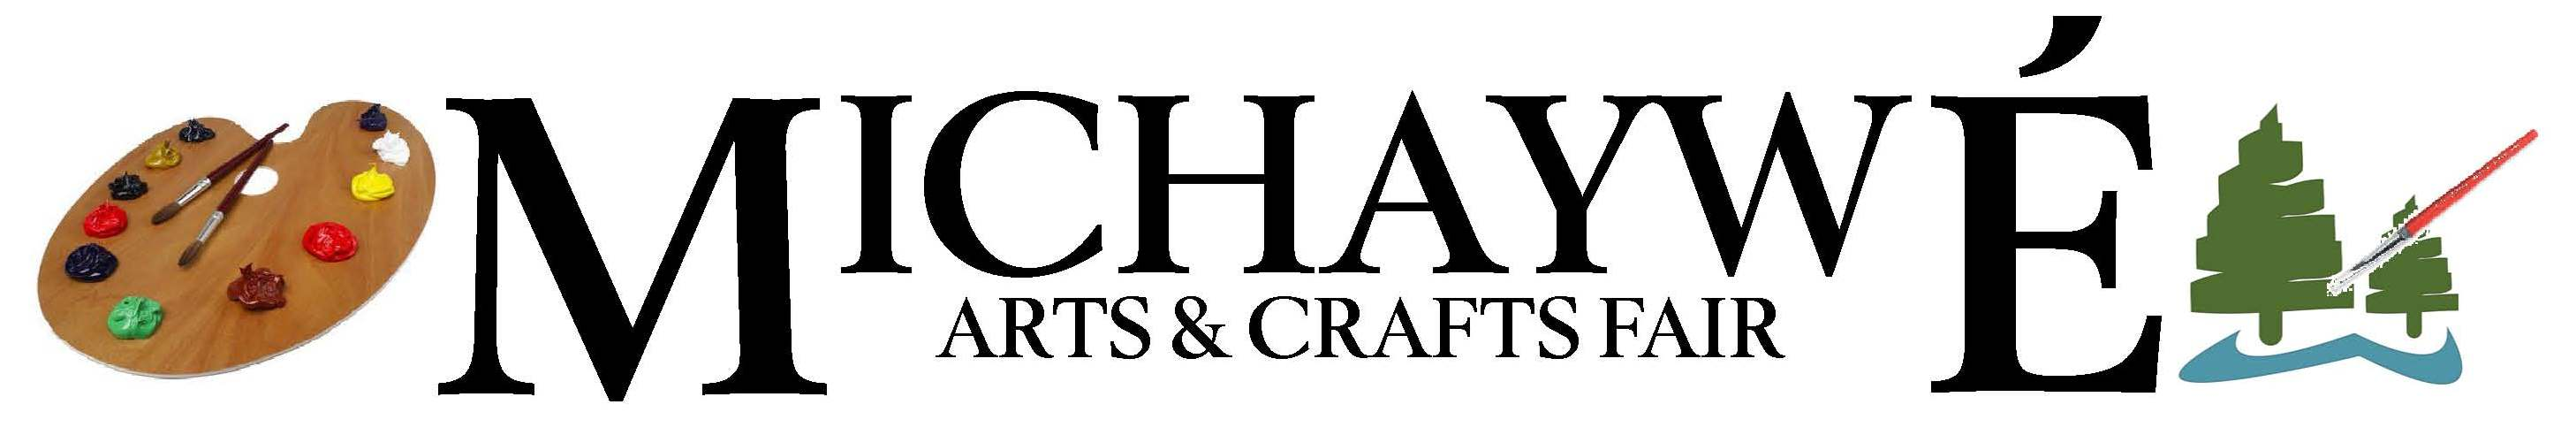 Michaywe Arts and Crafts Fair